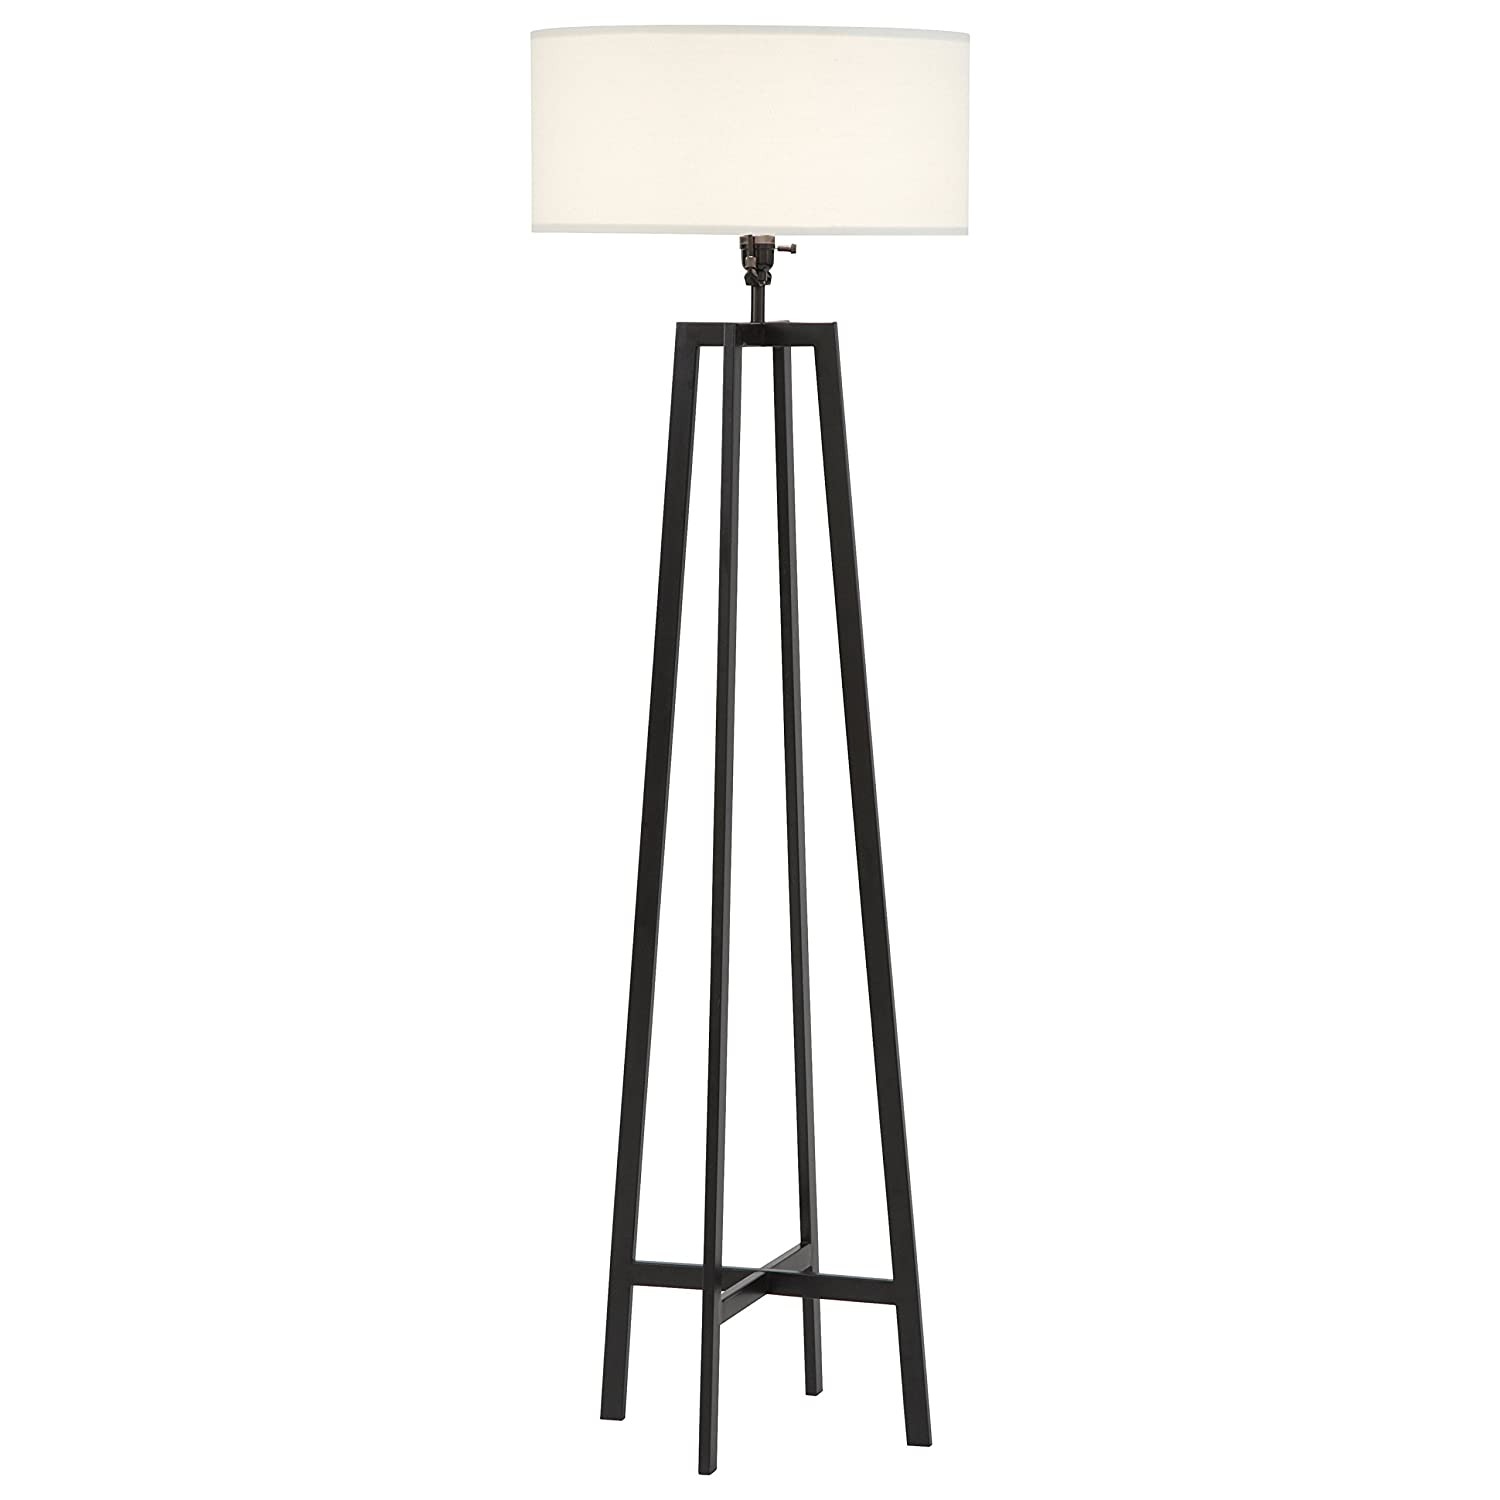 Amazon white floor lamps lamps shades tools - Stone Beam Deco Black Metal Floor Lamp 59 5 H With Bulb